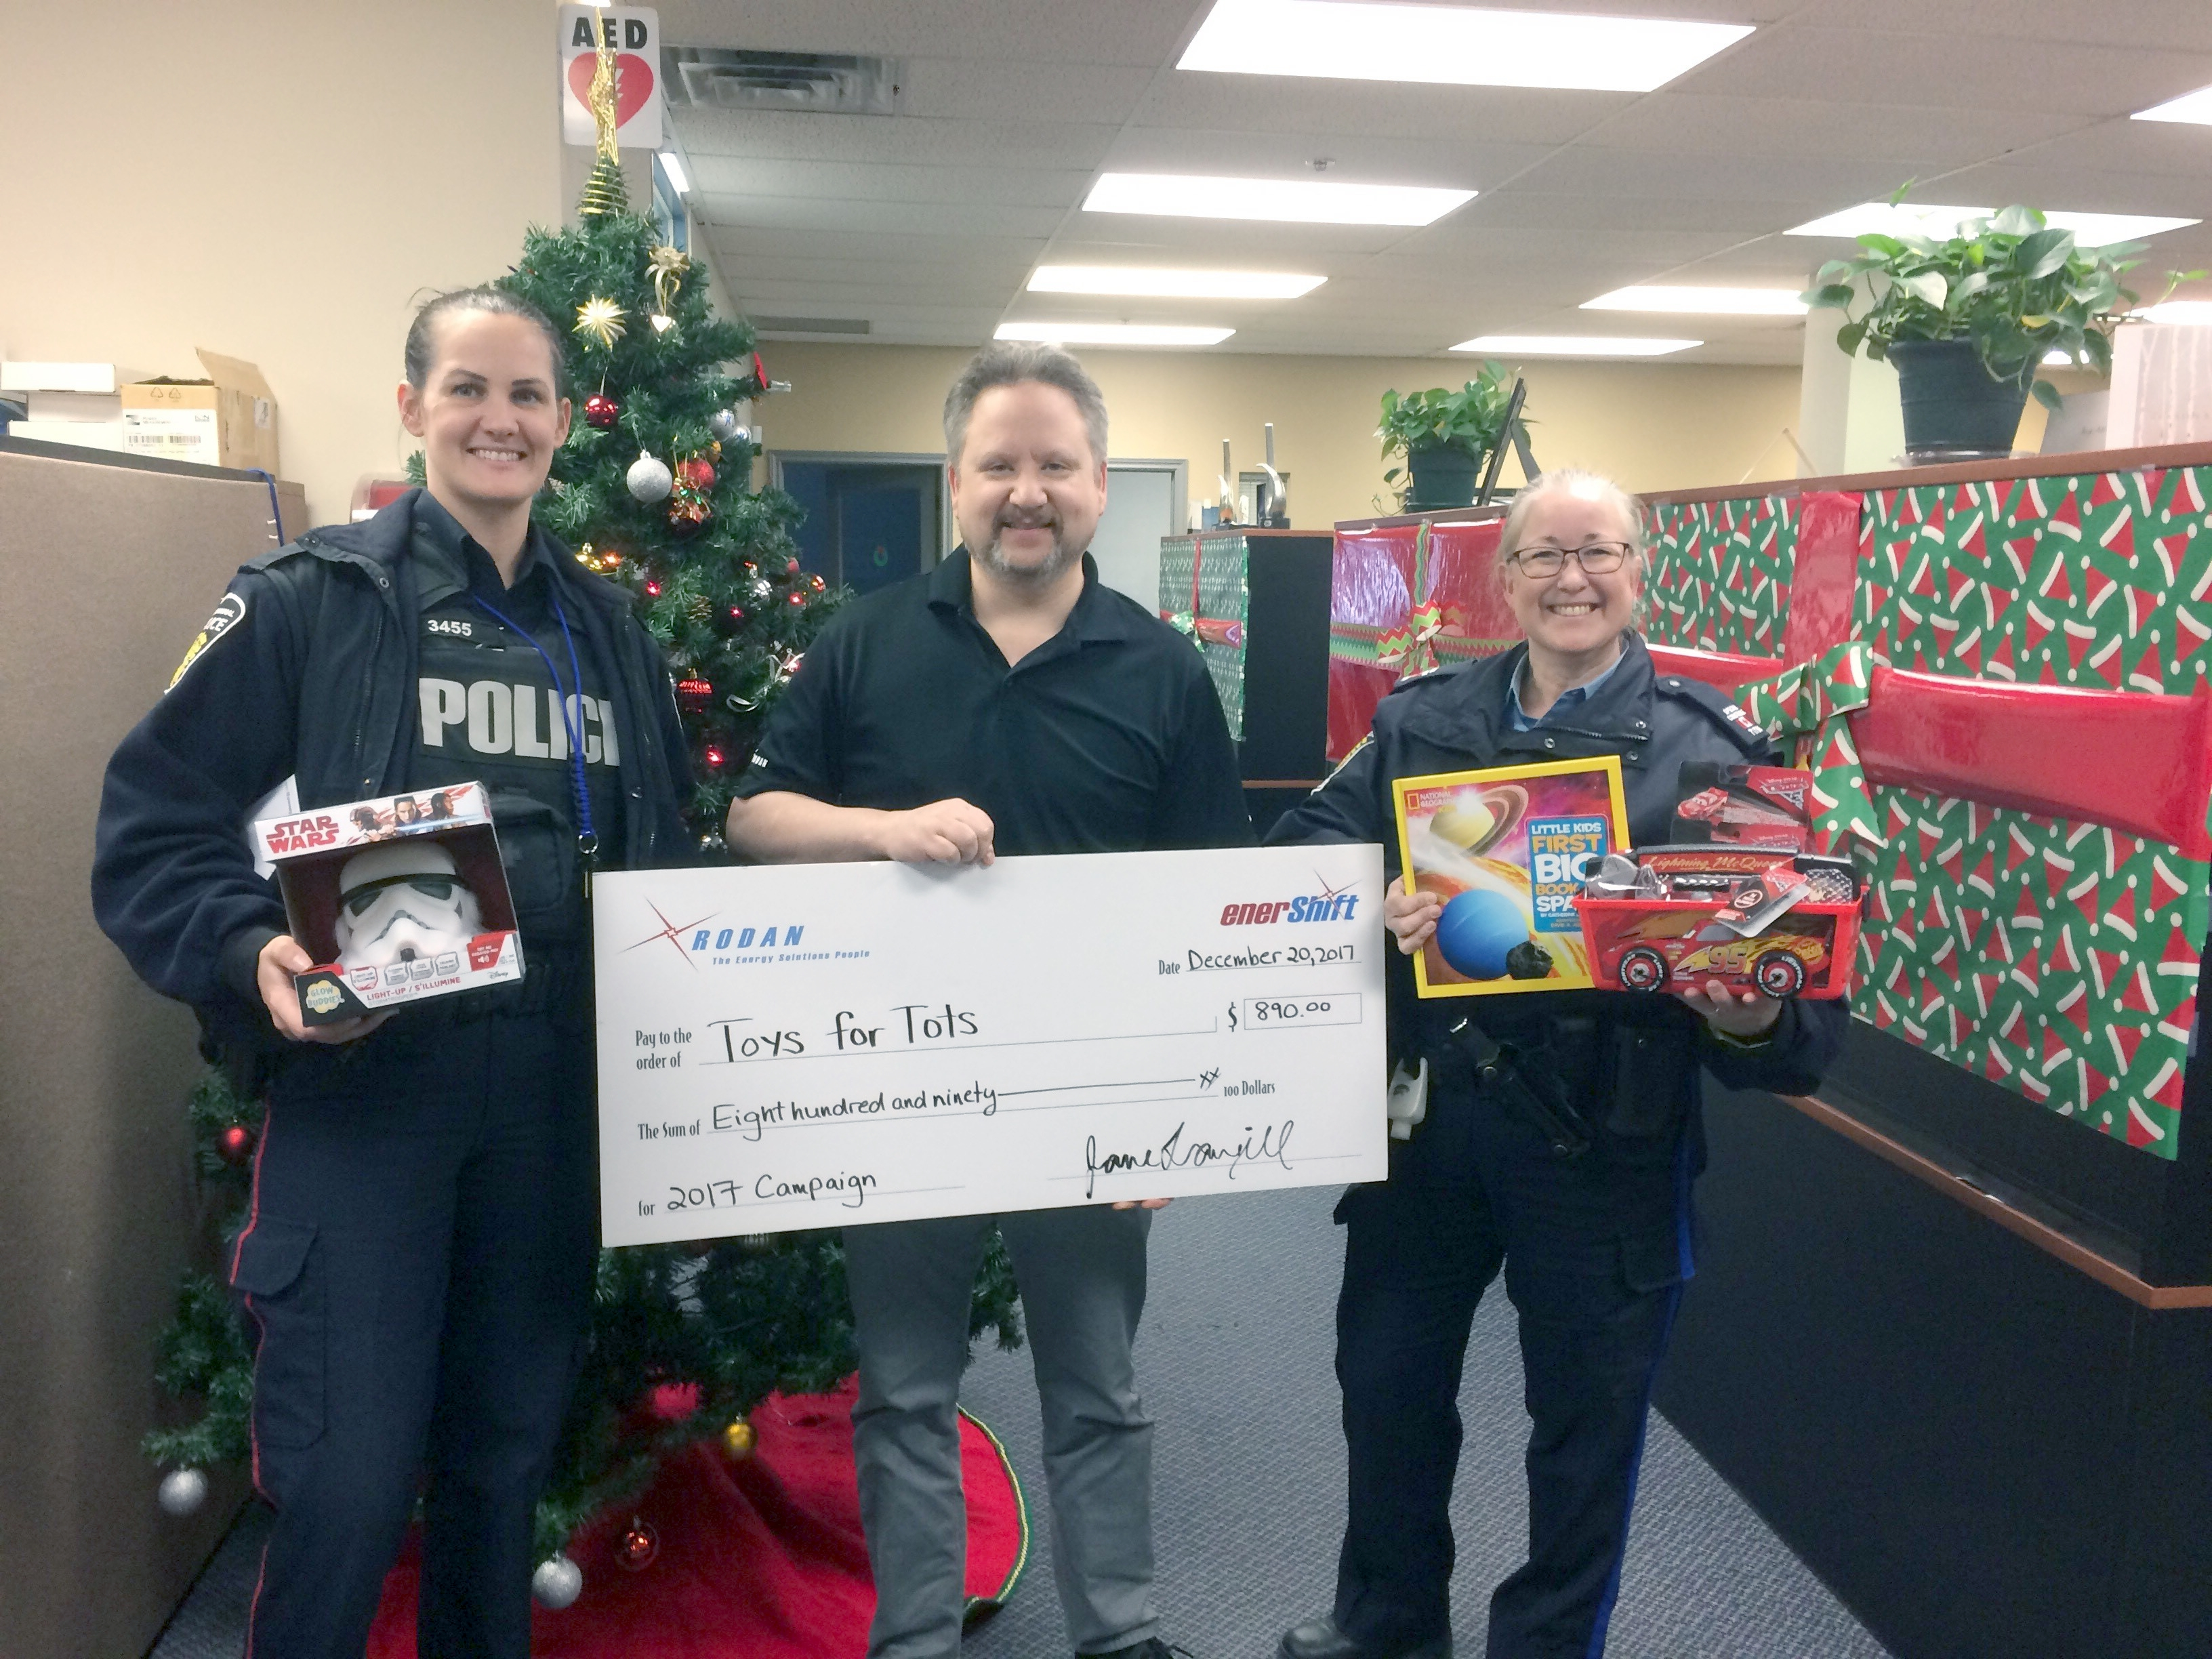 Police Toys For Tots 2017 : Rodan energy toys for tots solutions